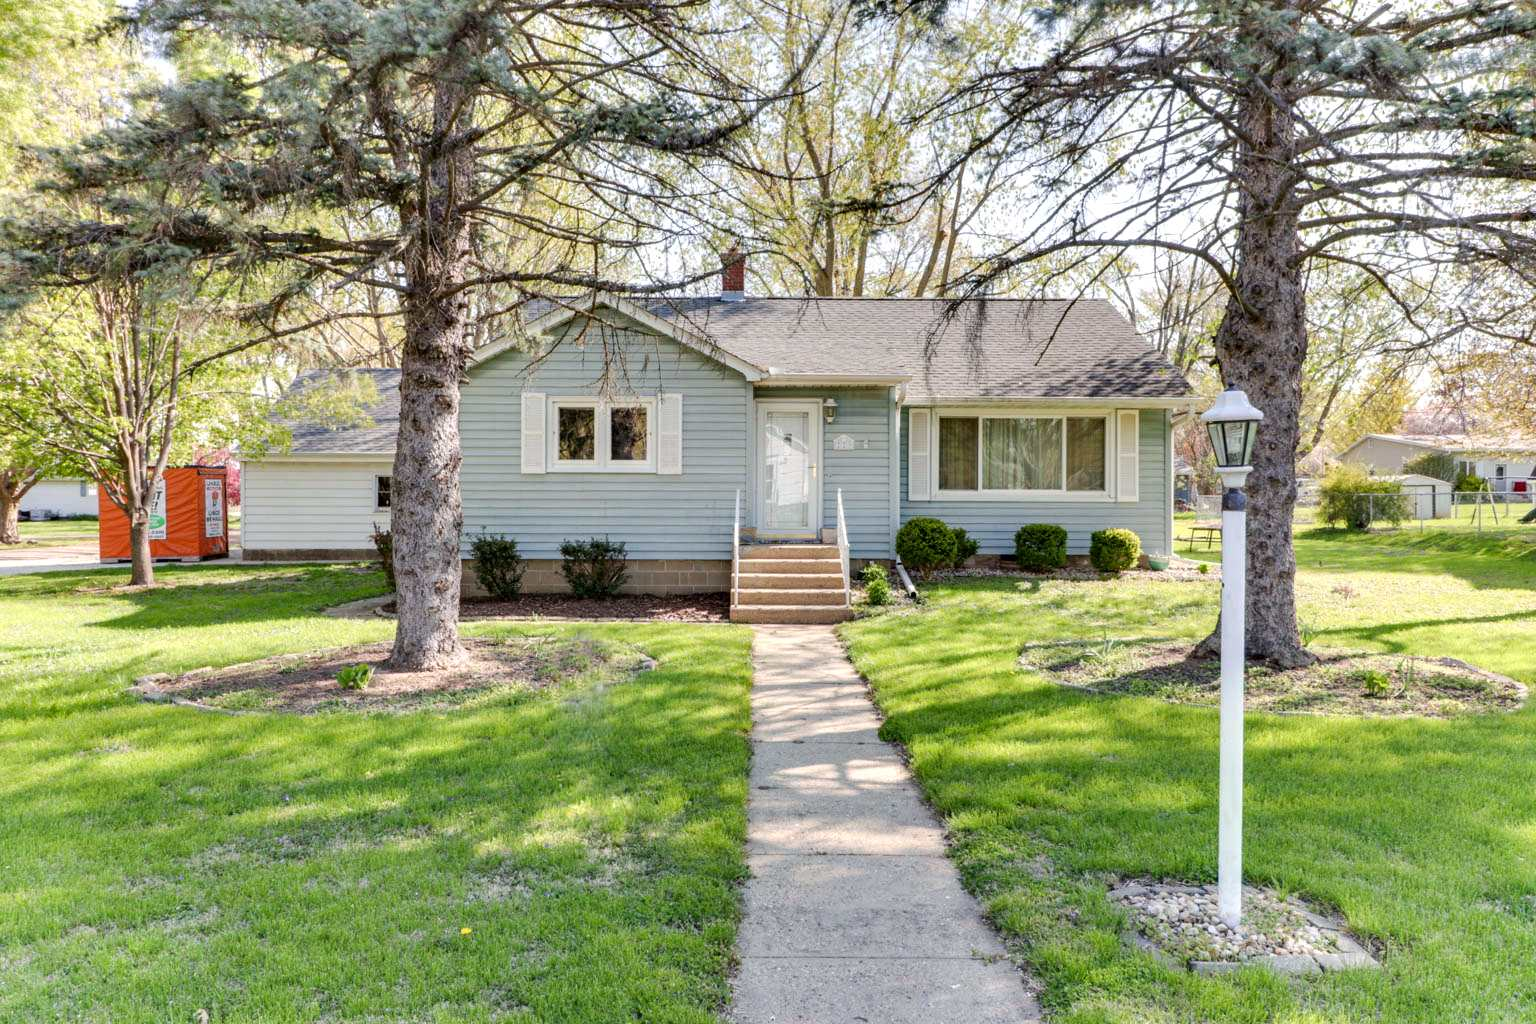 229 NW JEFFERSON Property Photo - Hopedale, IL real estate listing